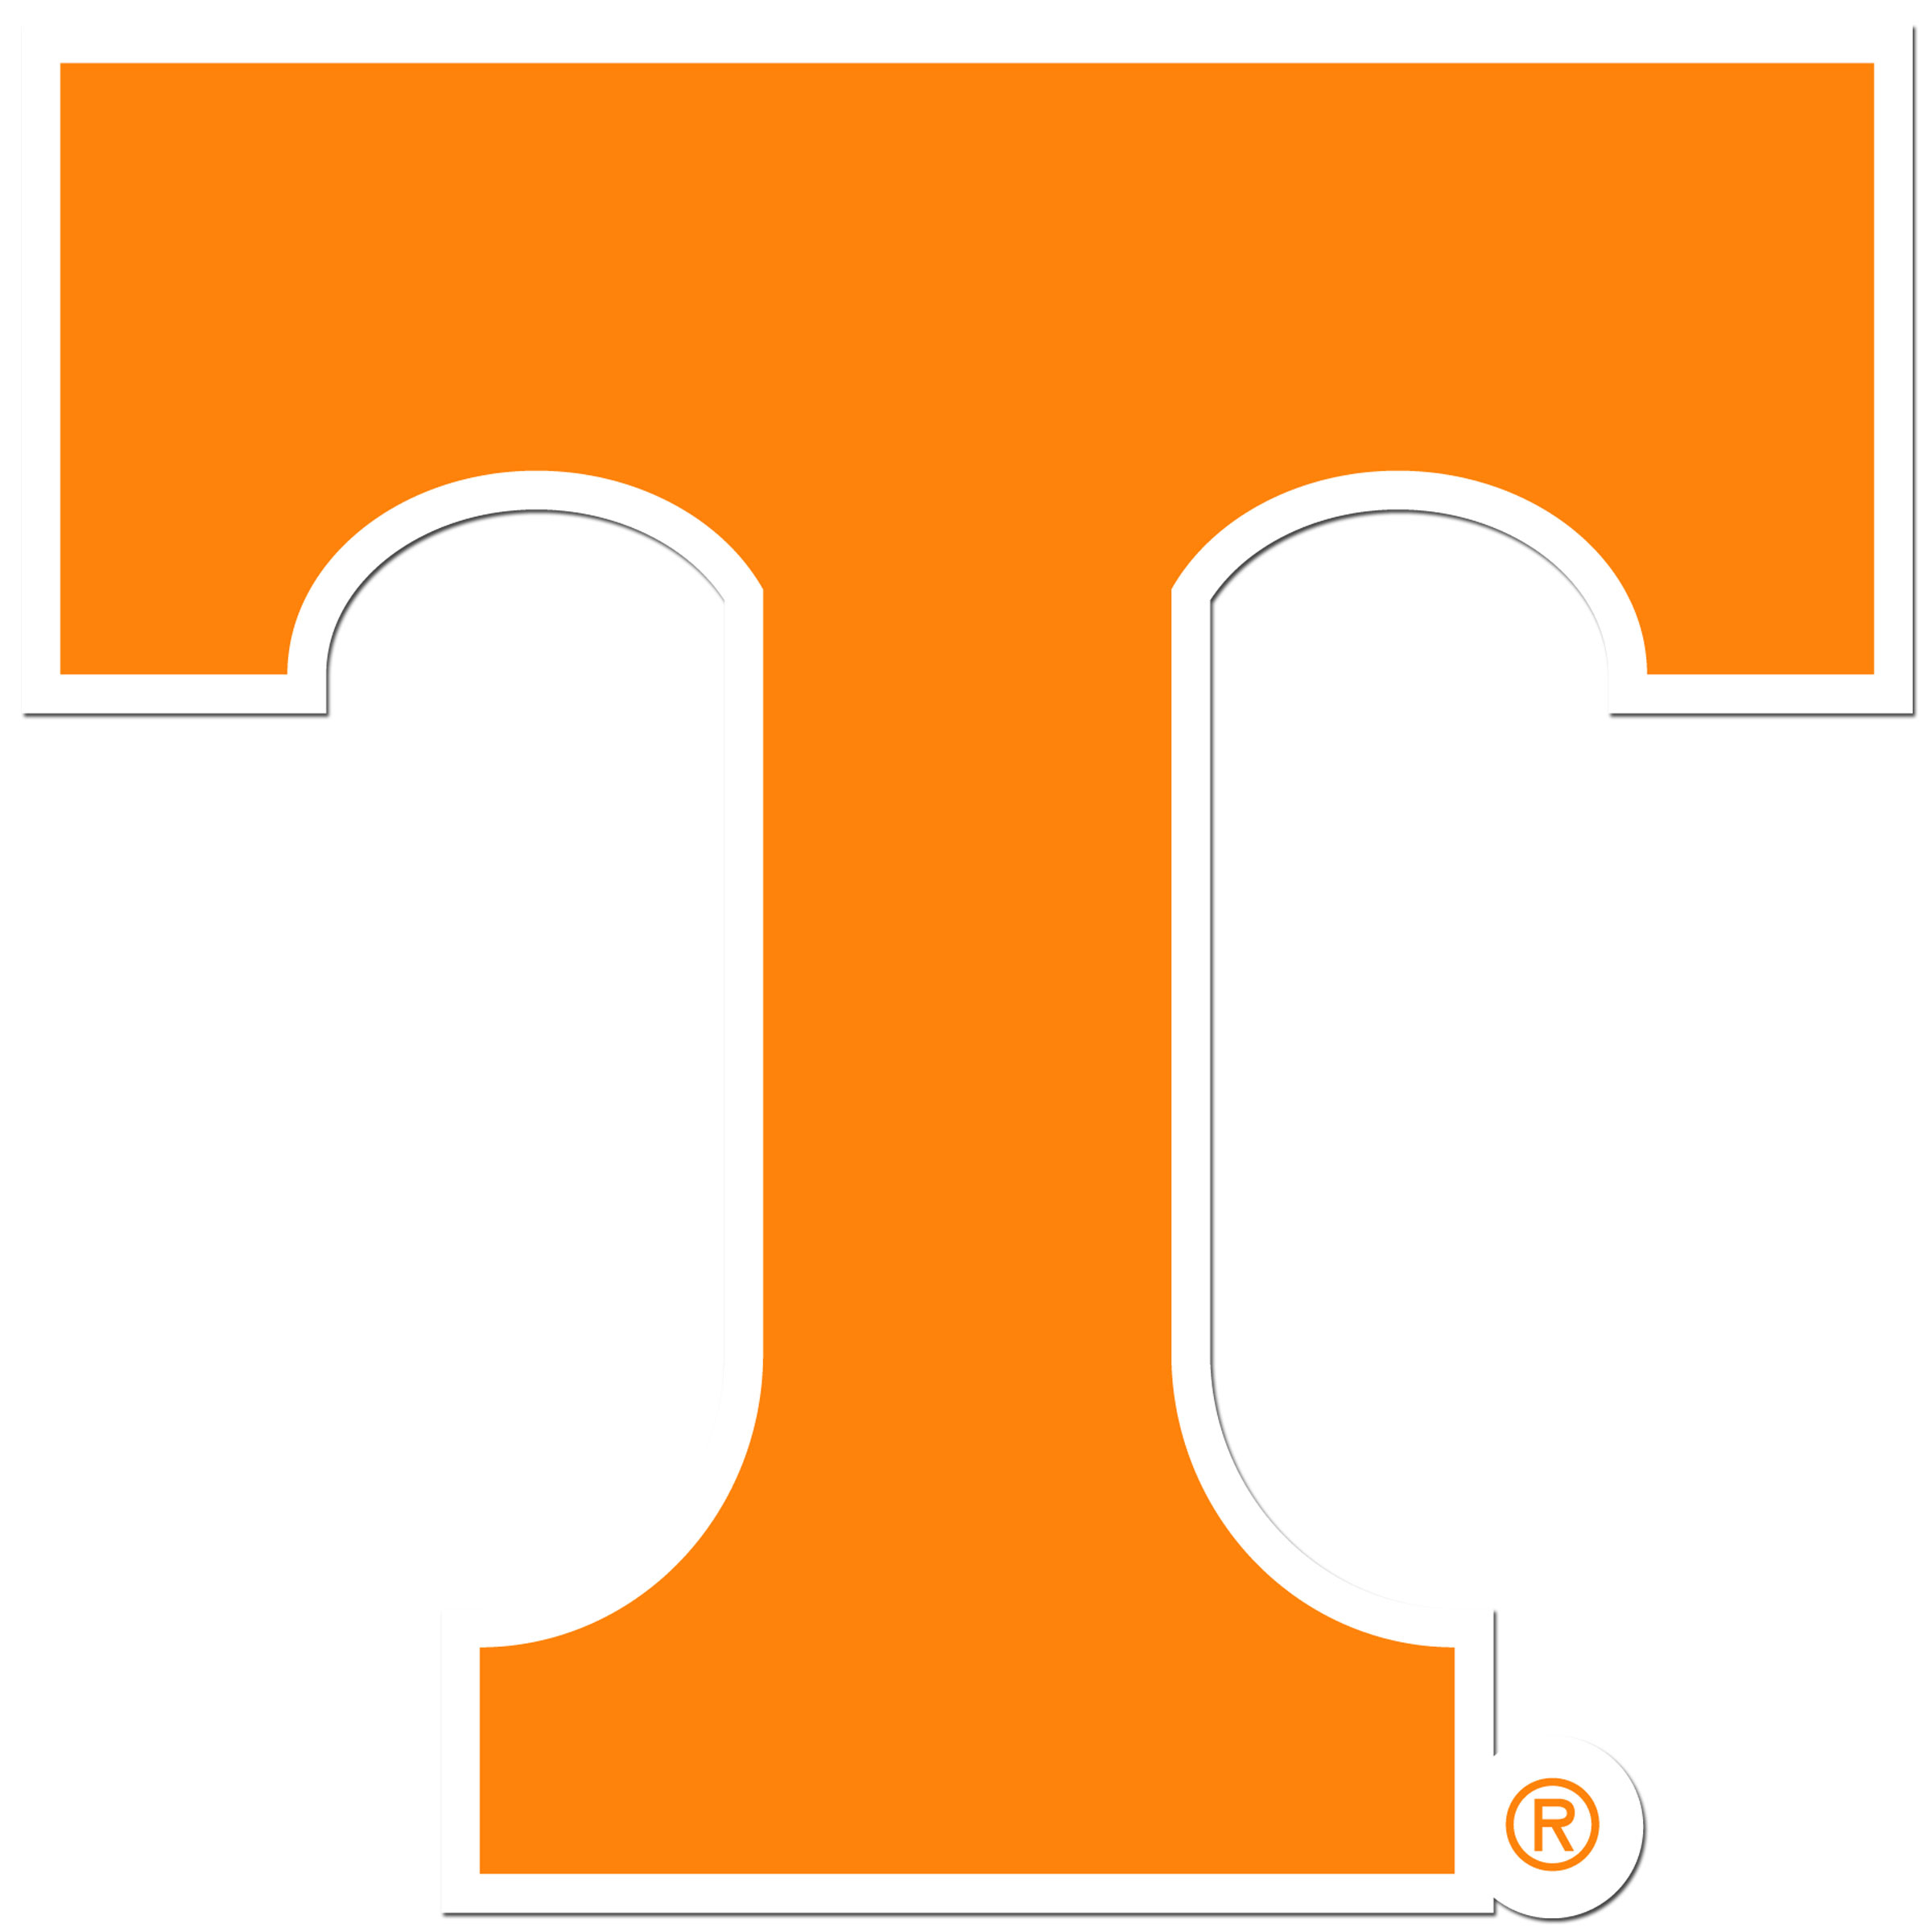 Tennessee Volunteers 8 inch Auto Decal - This bold, 8 inch Tennessee Volunteers is a great way to show off your team pride! The low tack vinyl decal is easily positioned and adjusted to make sure you get that logo in just the right spot on your vehicle. Designed to be used on the outside of the window.